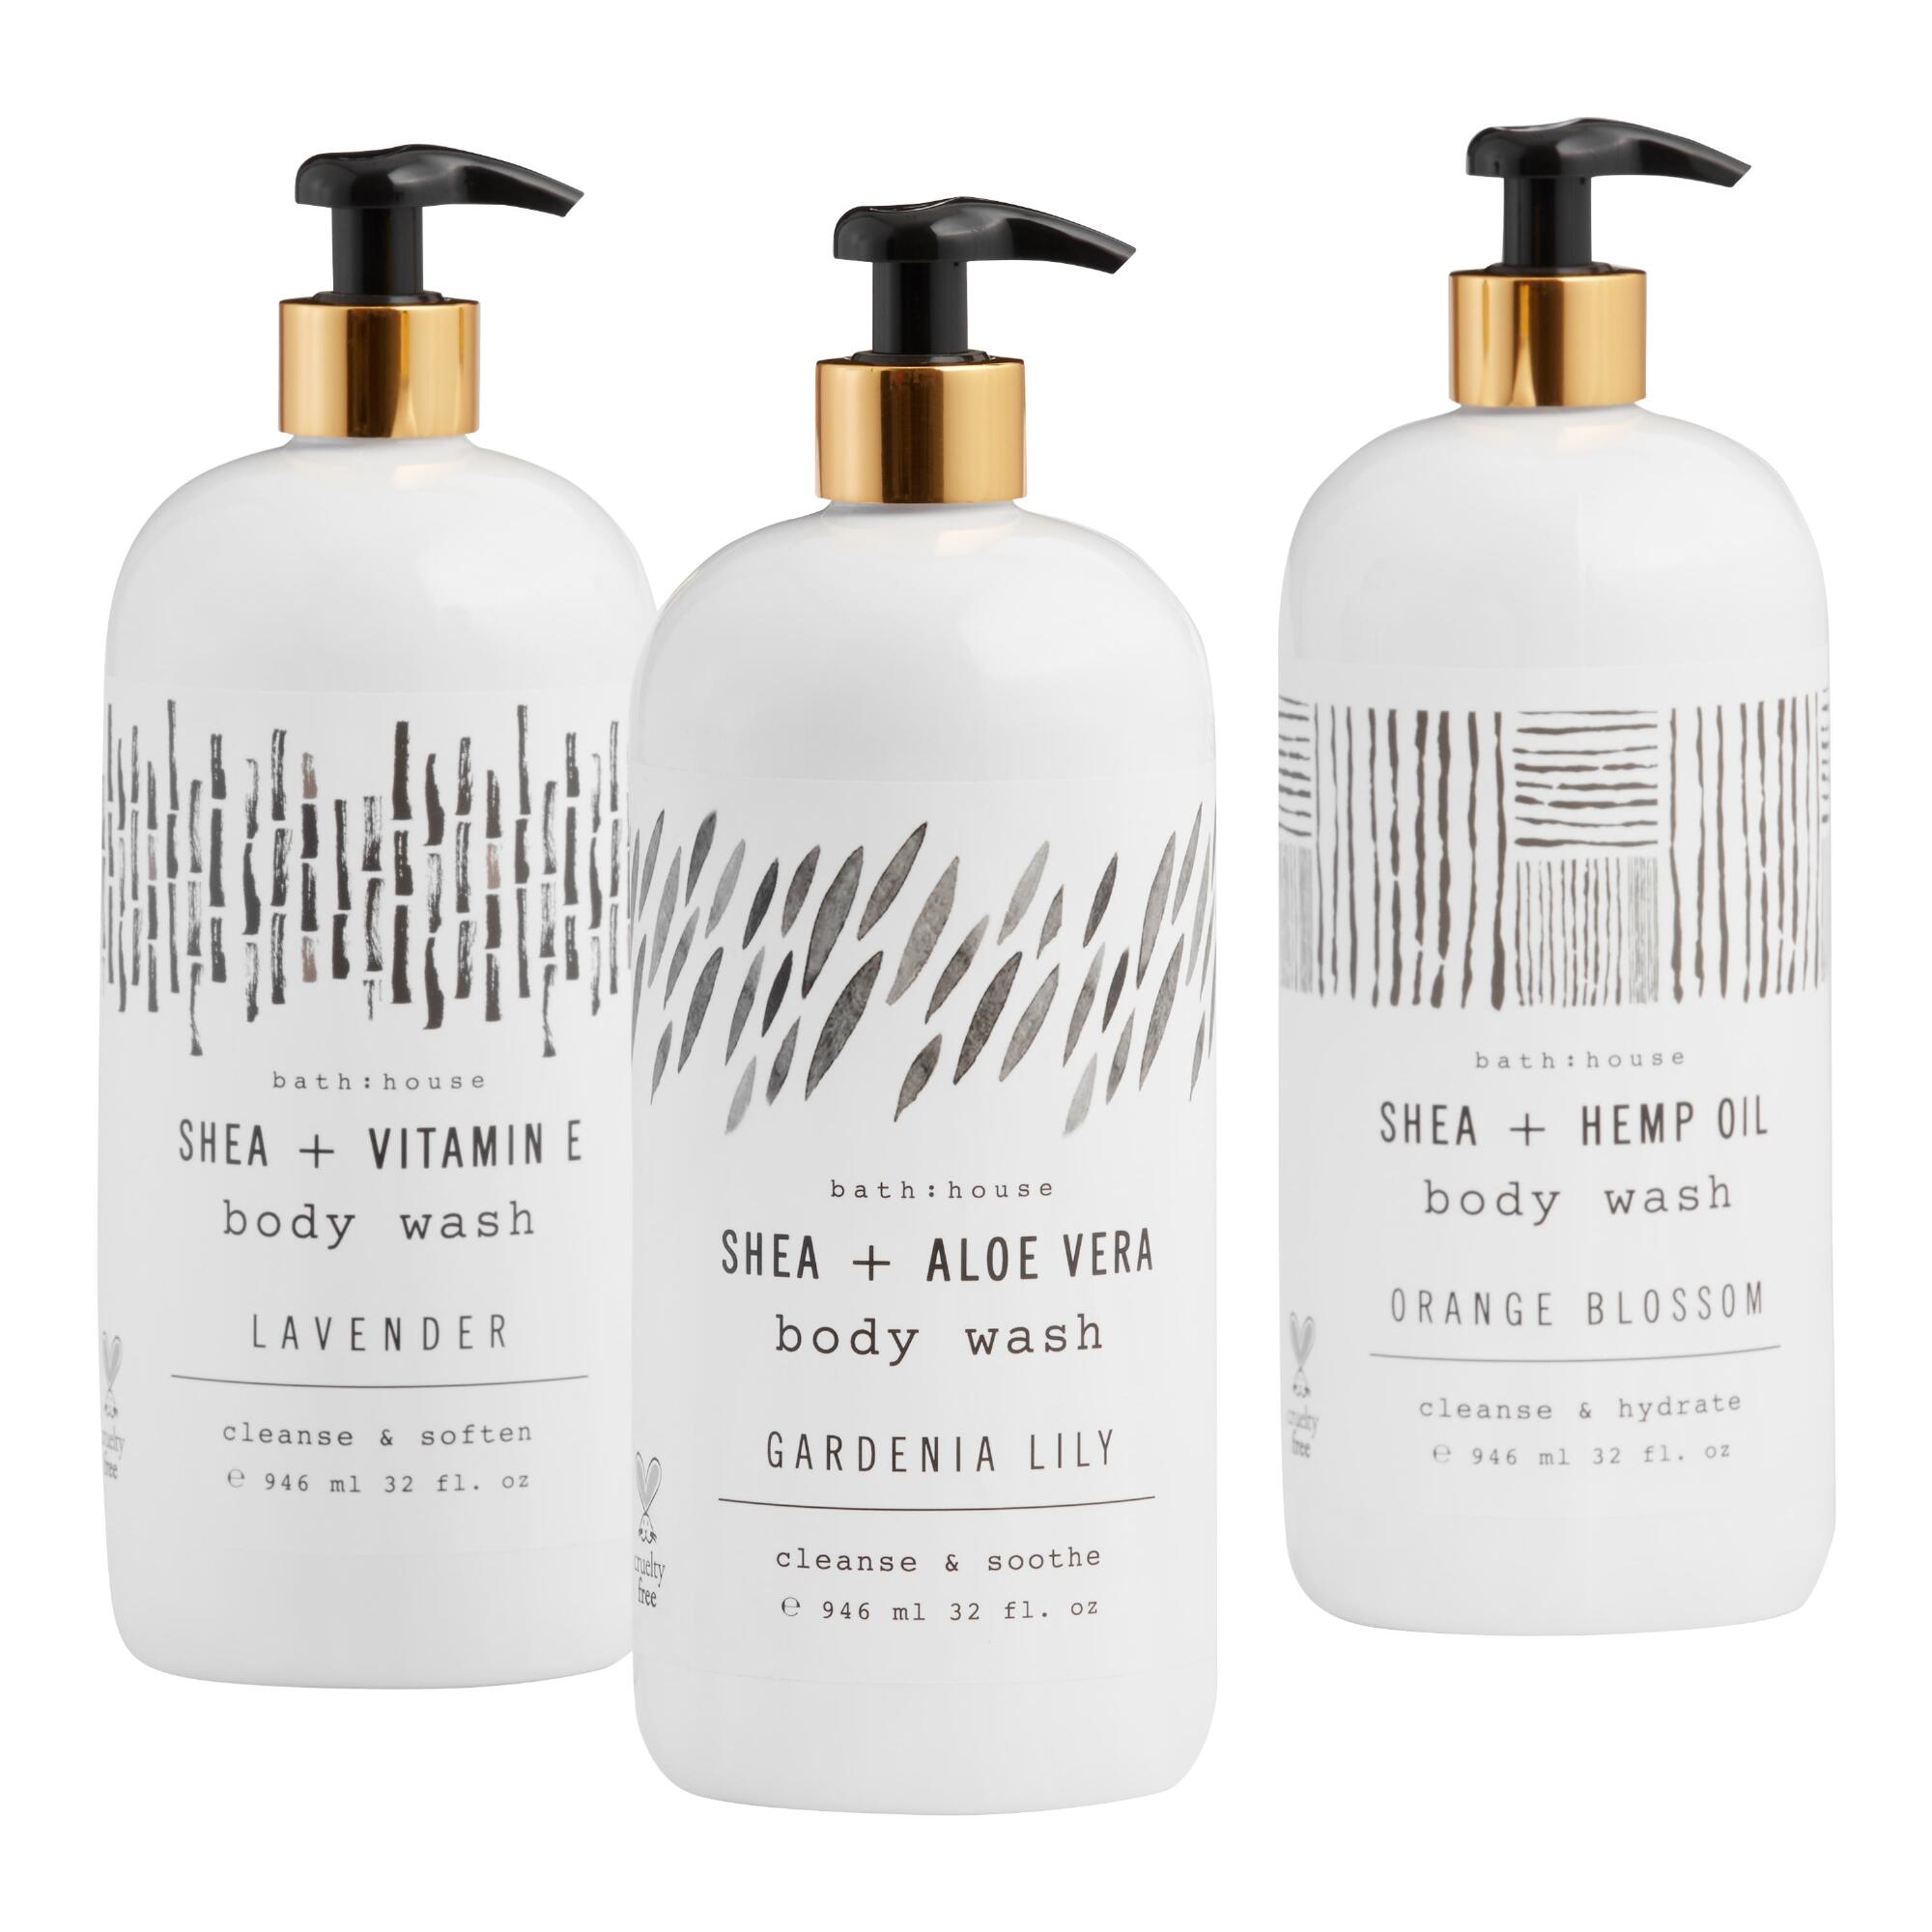 Bath House Shea Body Wash $7.99